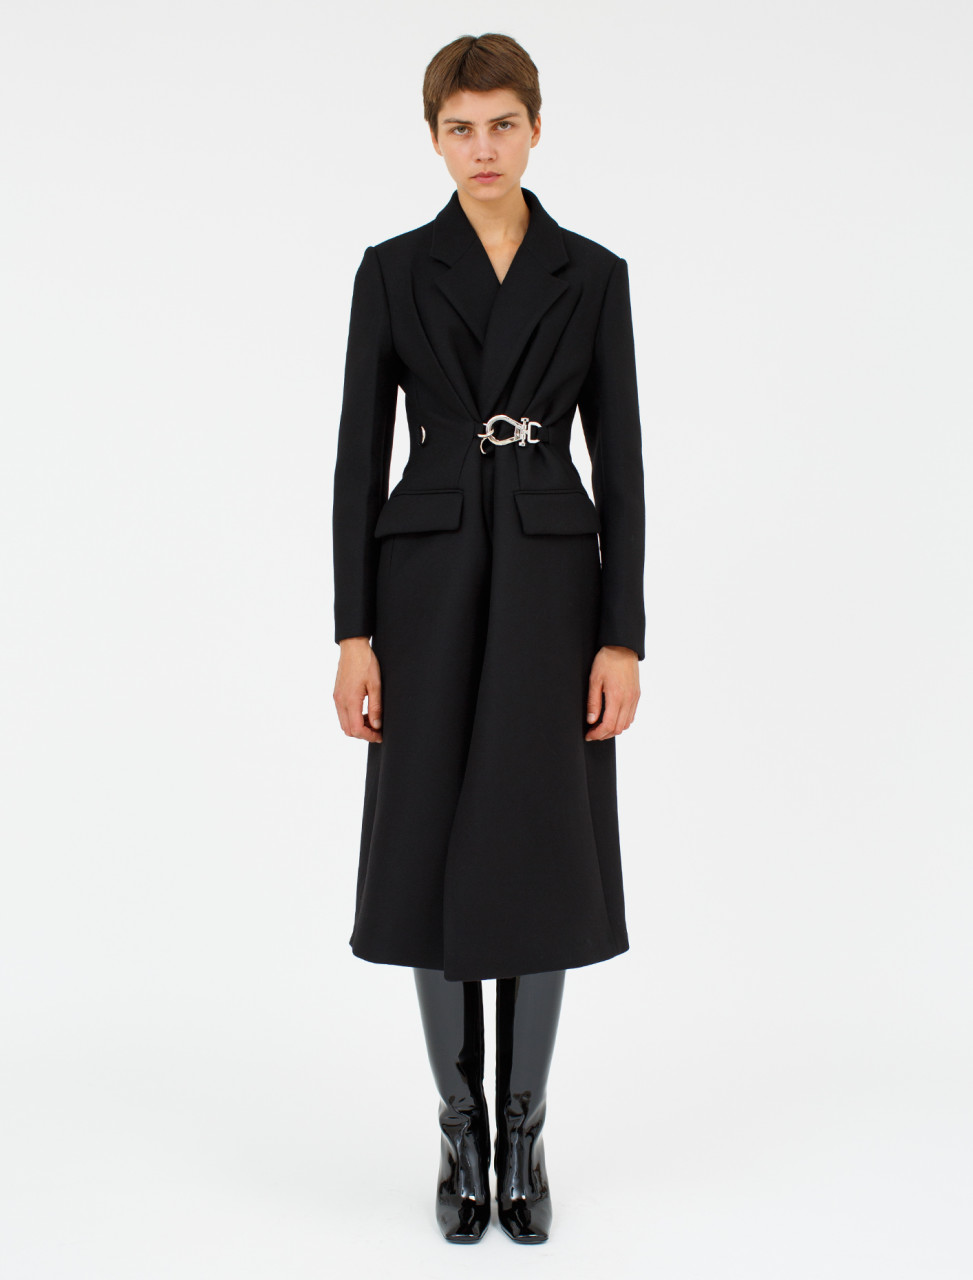 Double Cloth Coat with Hardware Closure